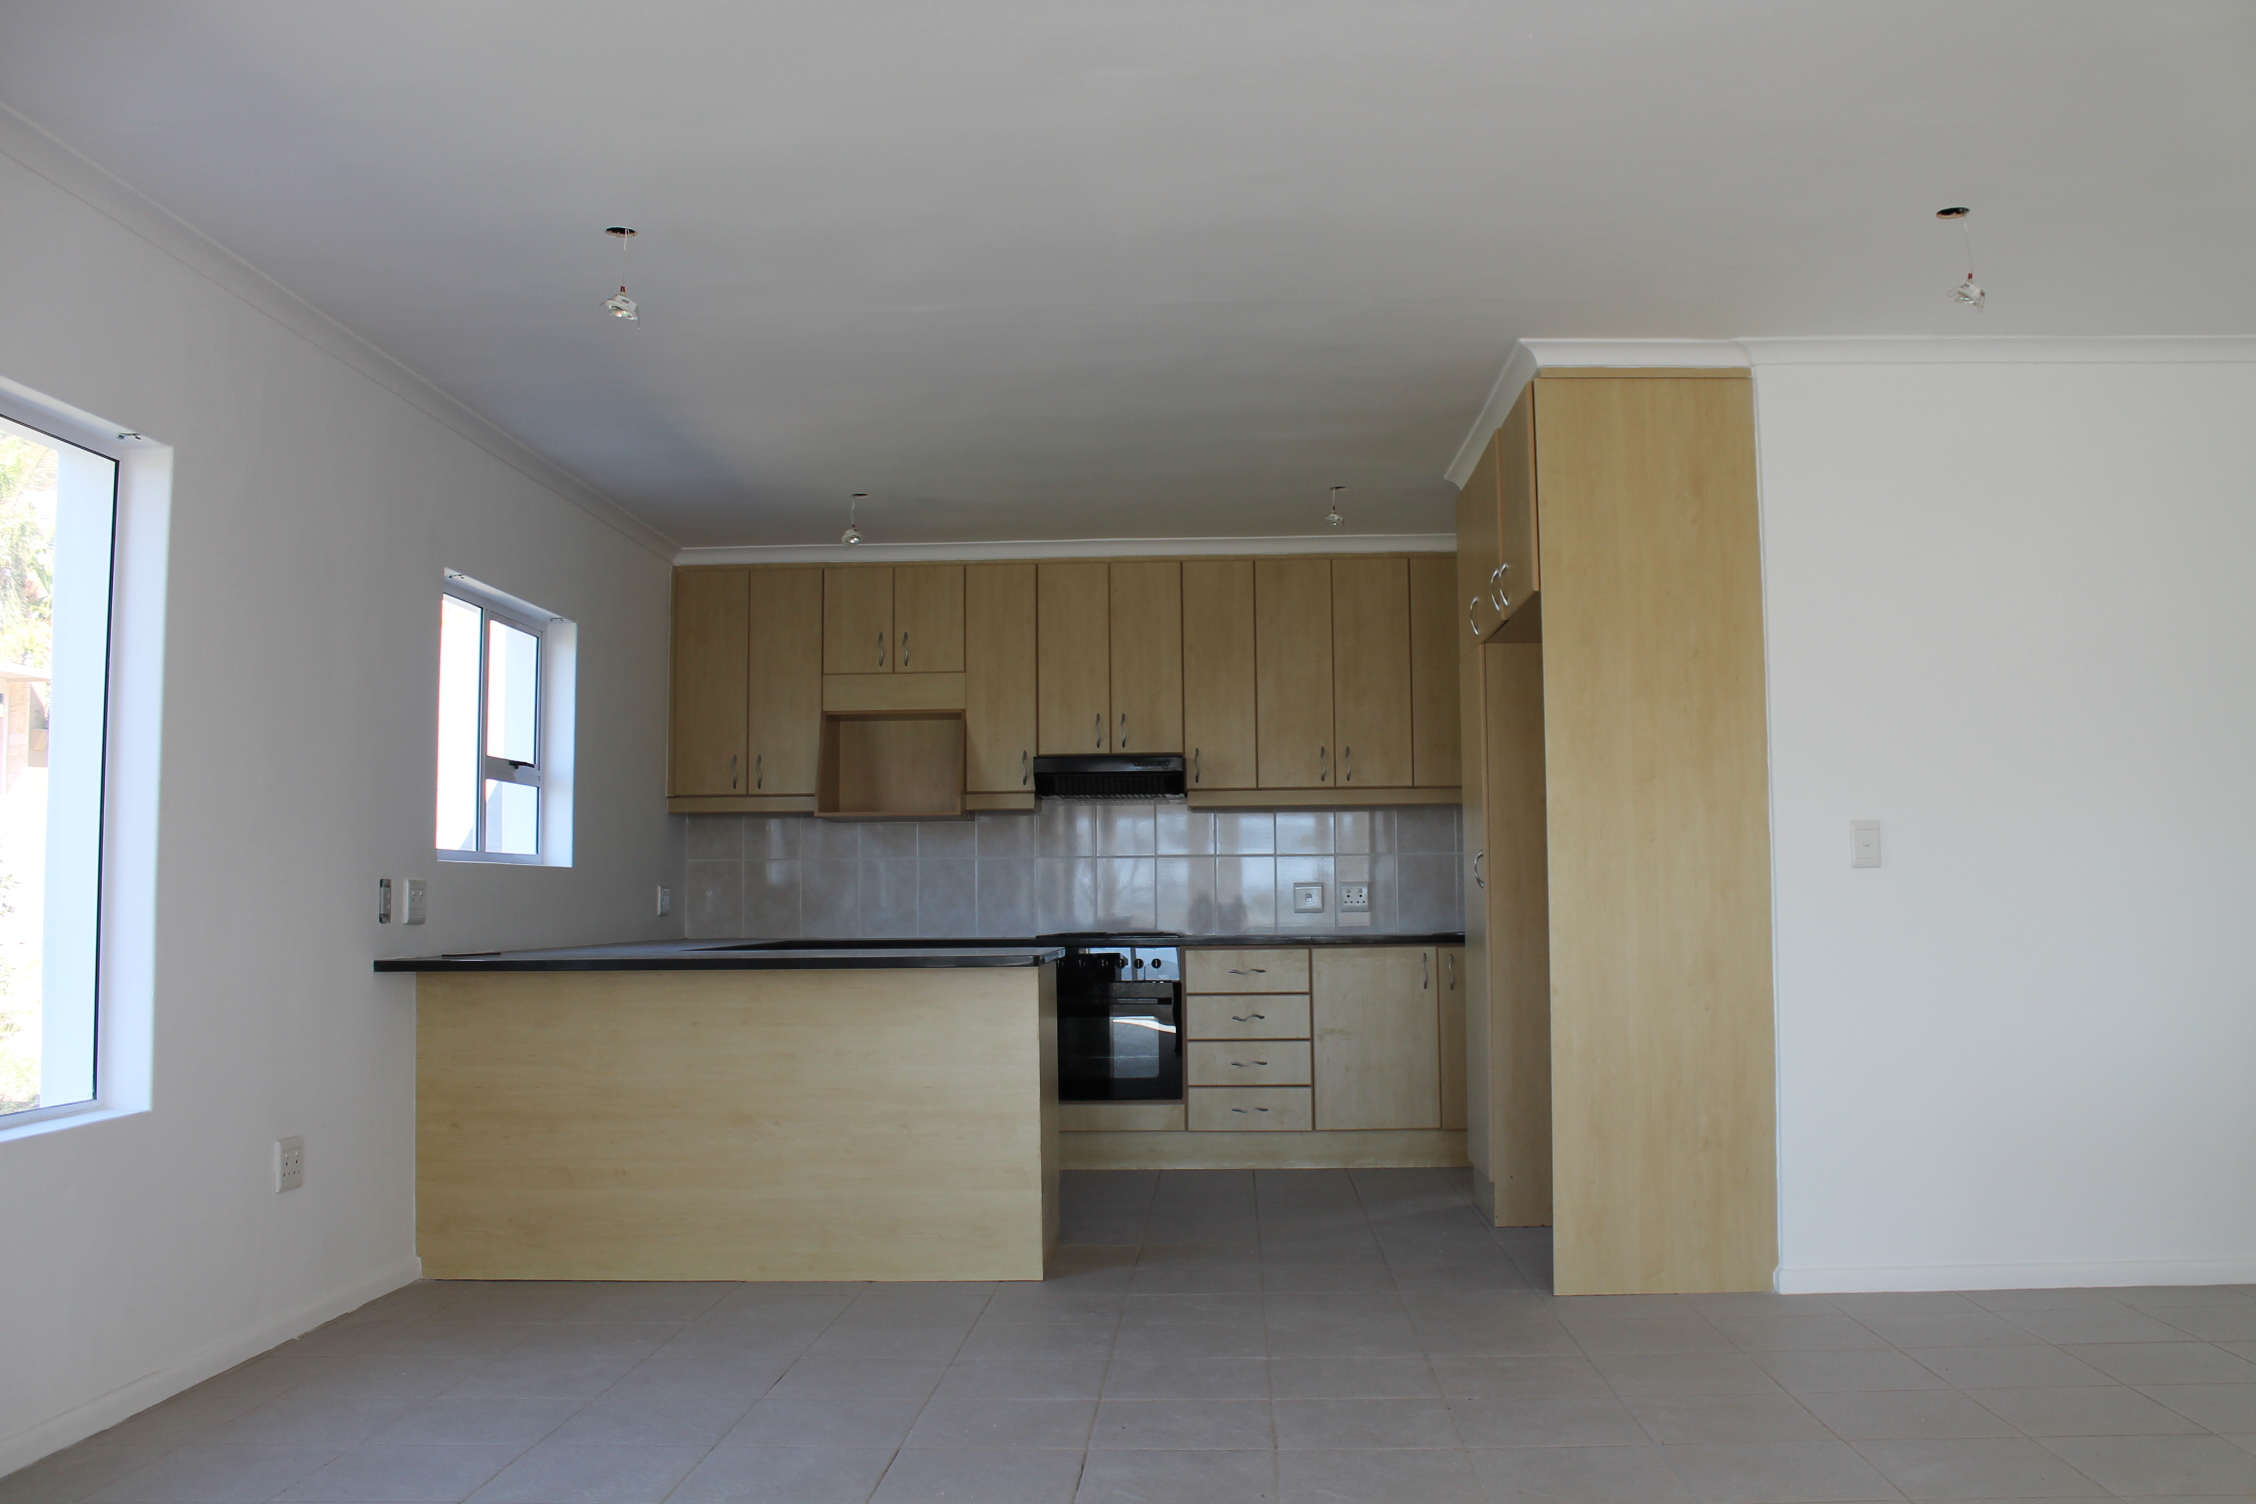 4 Bedroom House for sale in Mountainside ENT0009453 : photo#9